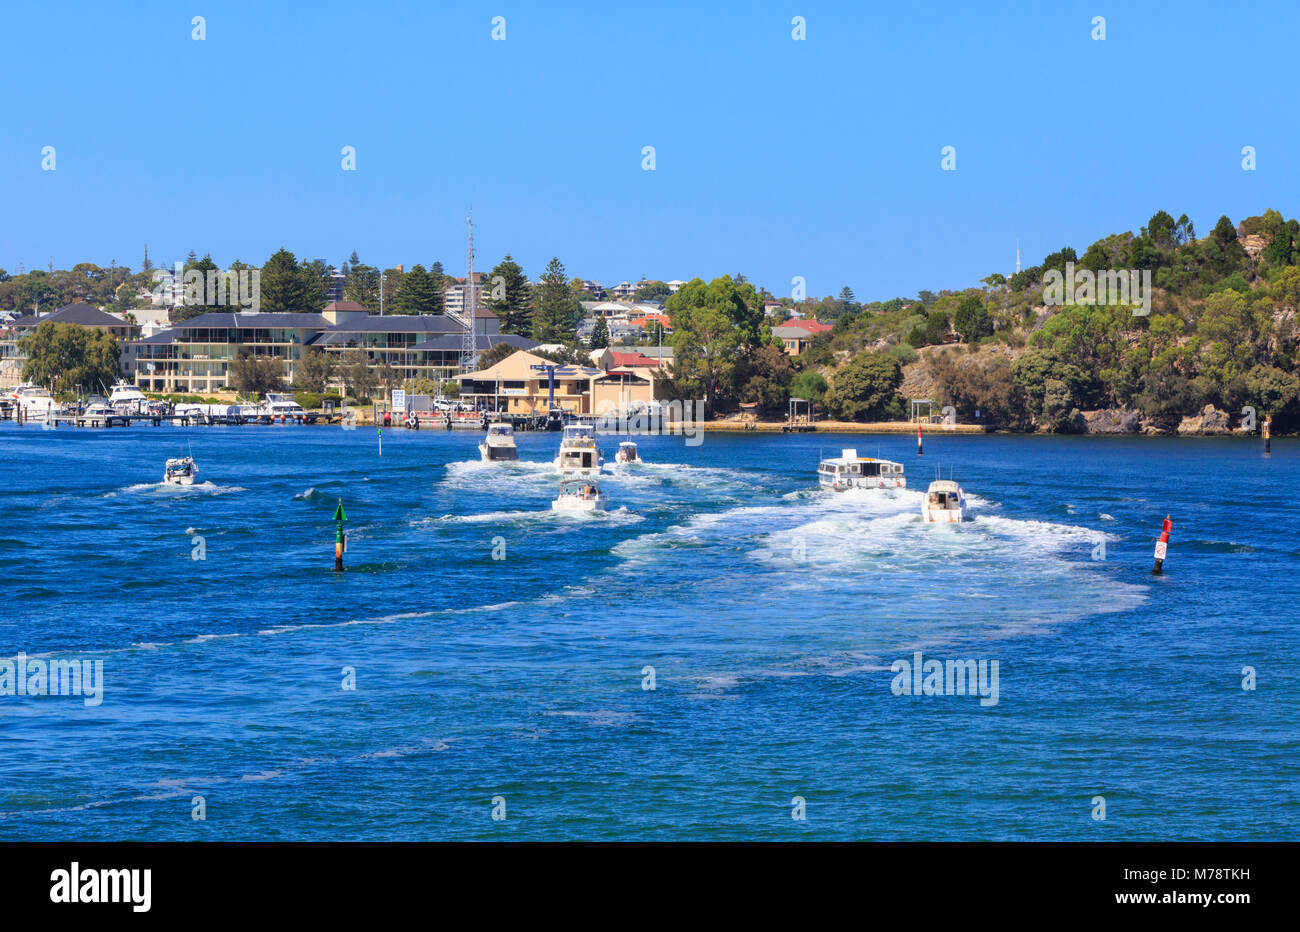 Boats on the Swan River - Stock Image